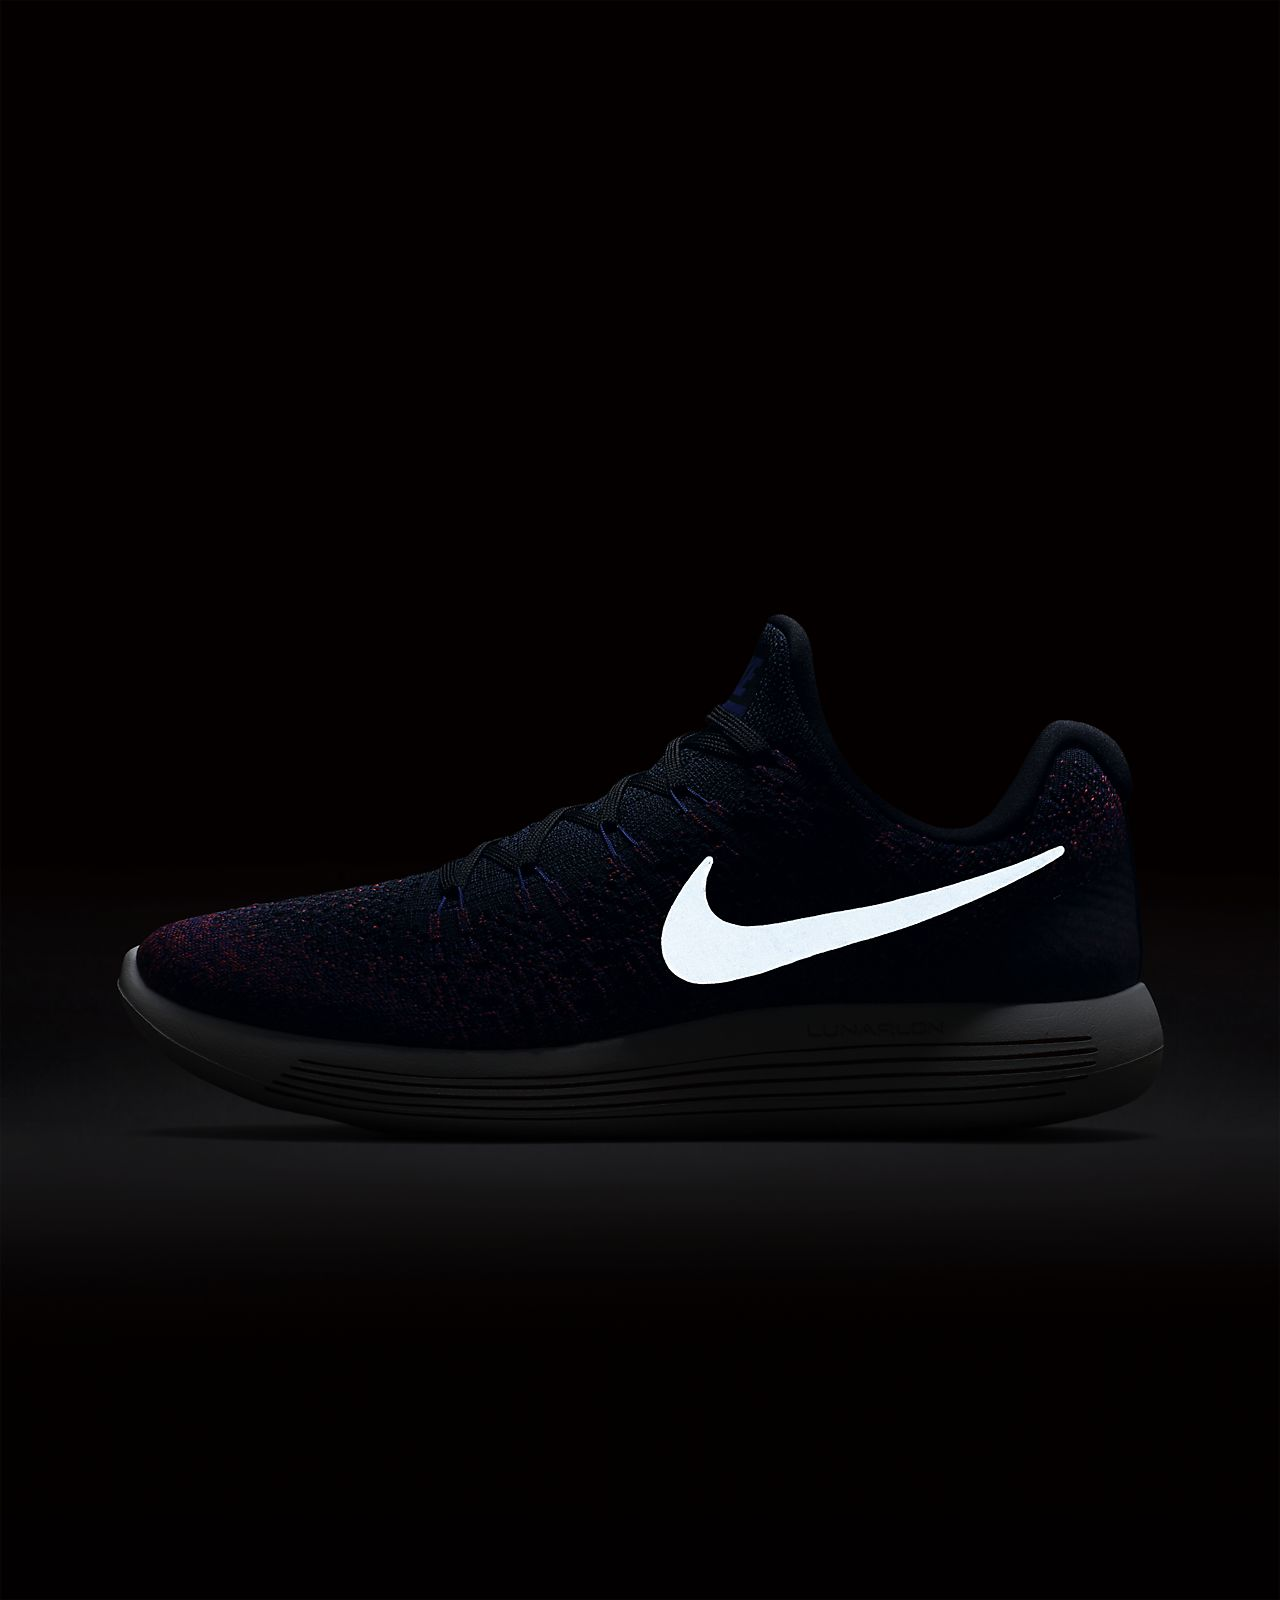 outlet store 8d9b3 a2bf6 mens nike lunareclipse 4 black  nike lunarepic low flyknit 2 mens running  shoe